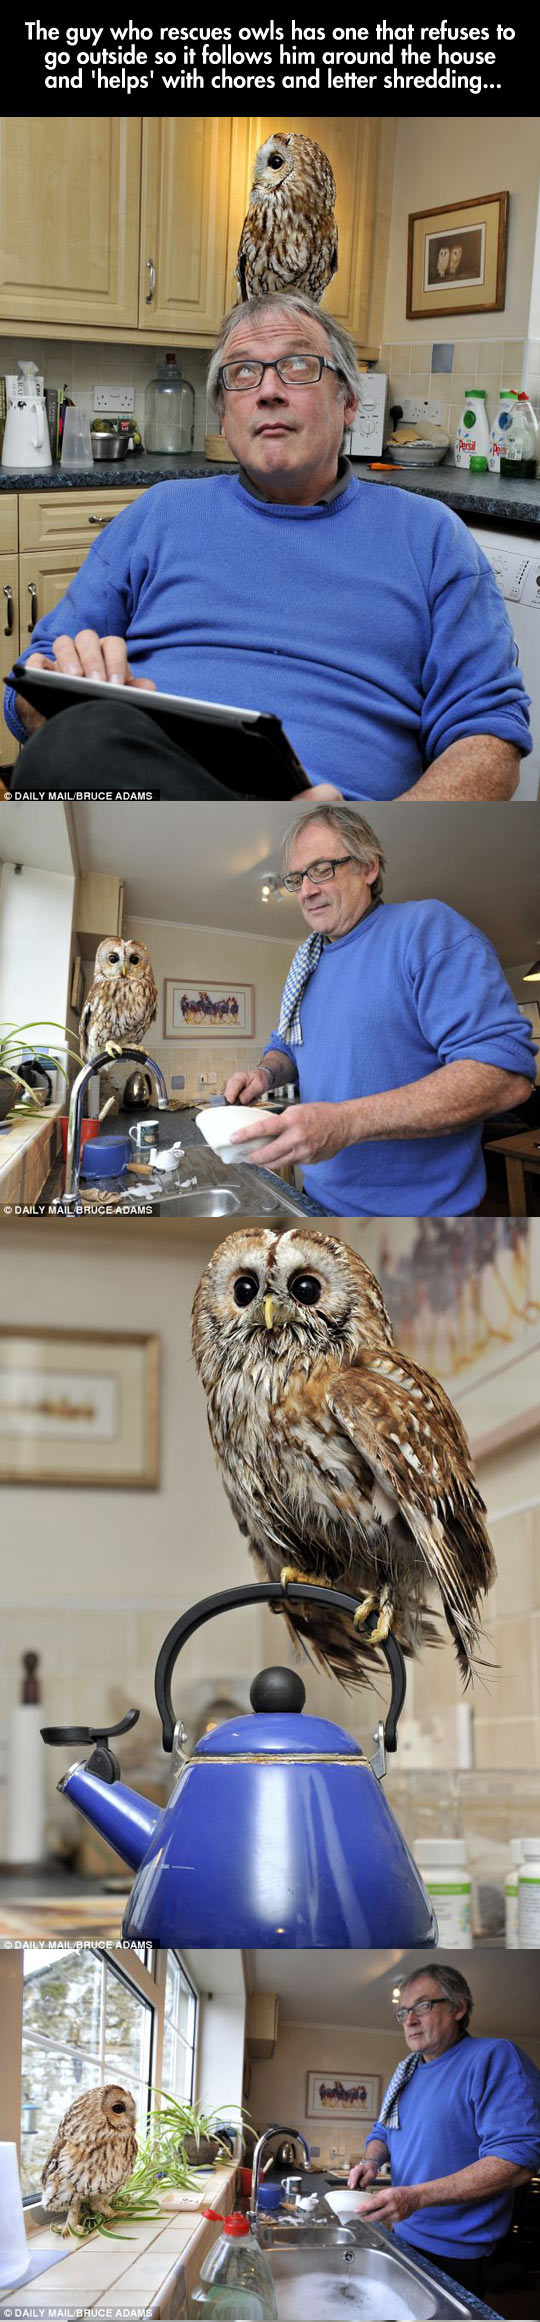 An Owl Pet That Helps With Chores, Sounds Like a Disney Movie